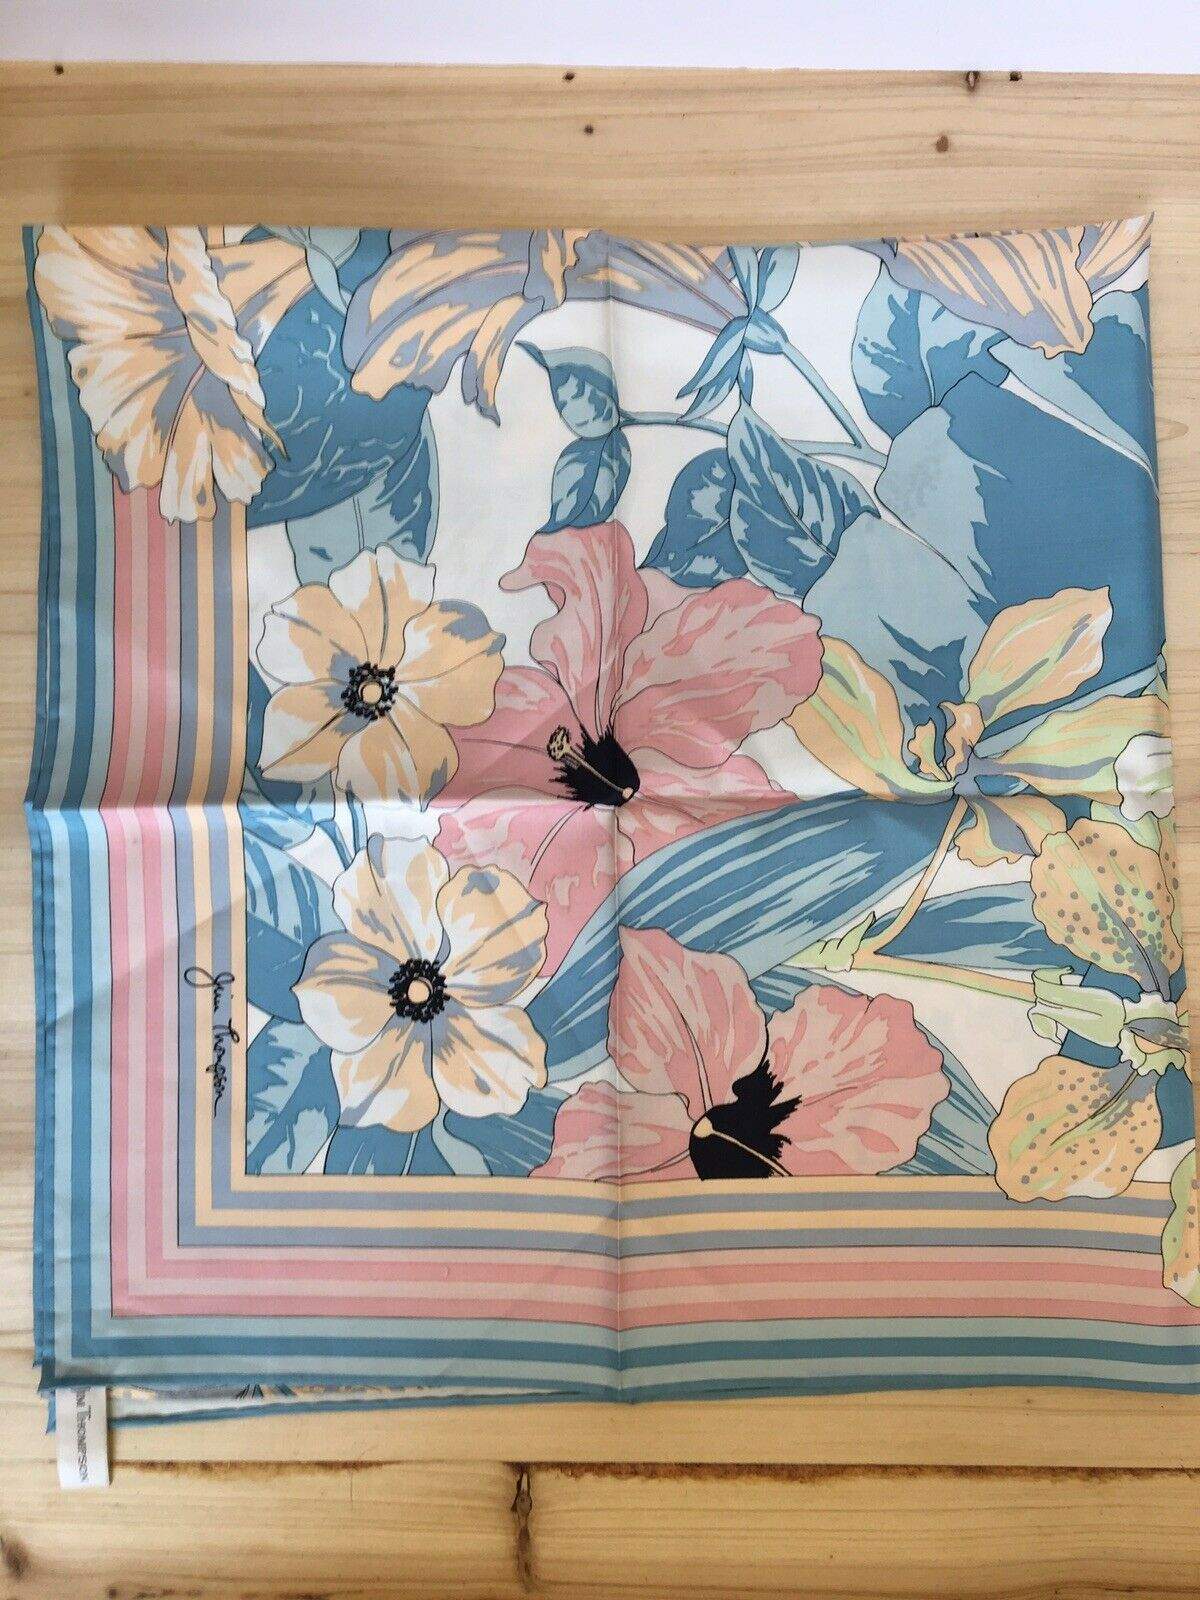 Large Flower Patterned Square 100% Silk Scarf by Jim Thompson - Made in Thailand